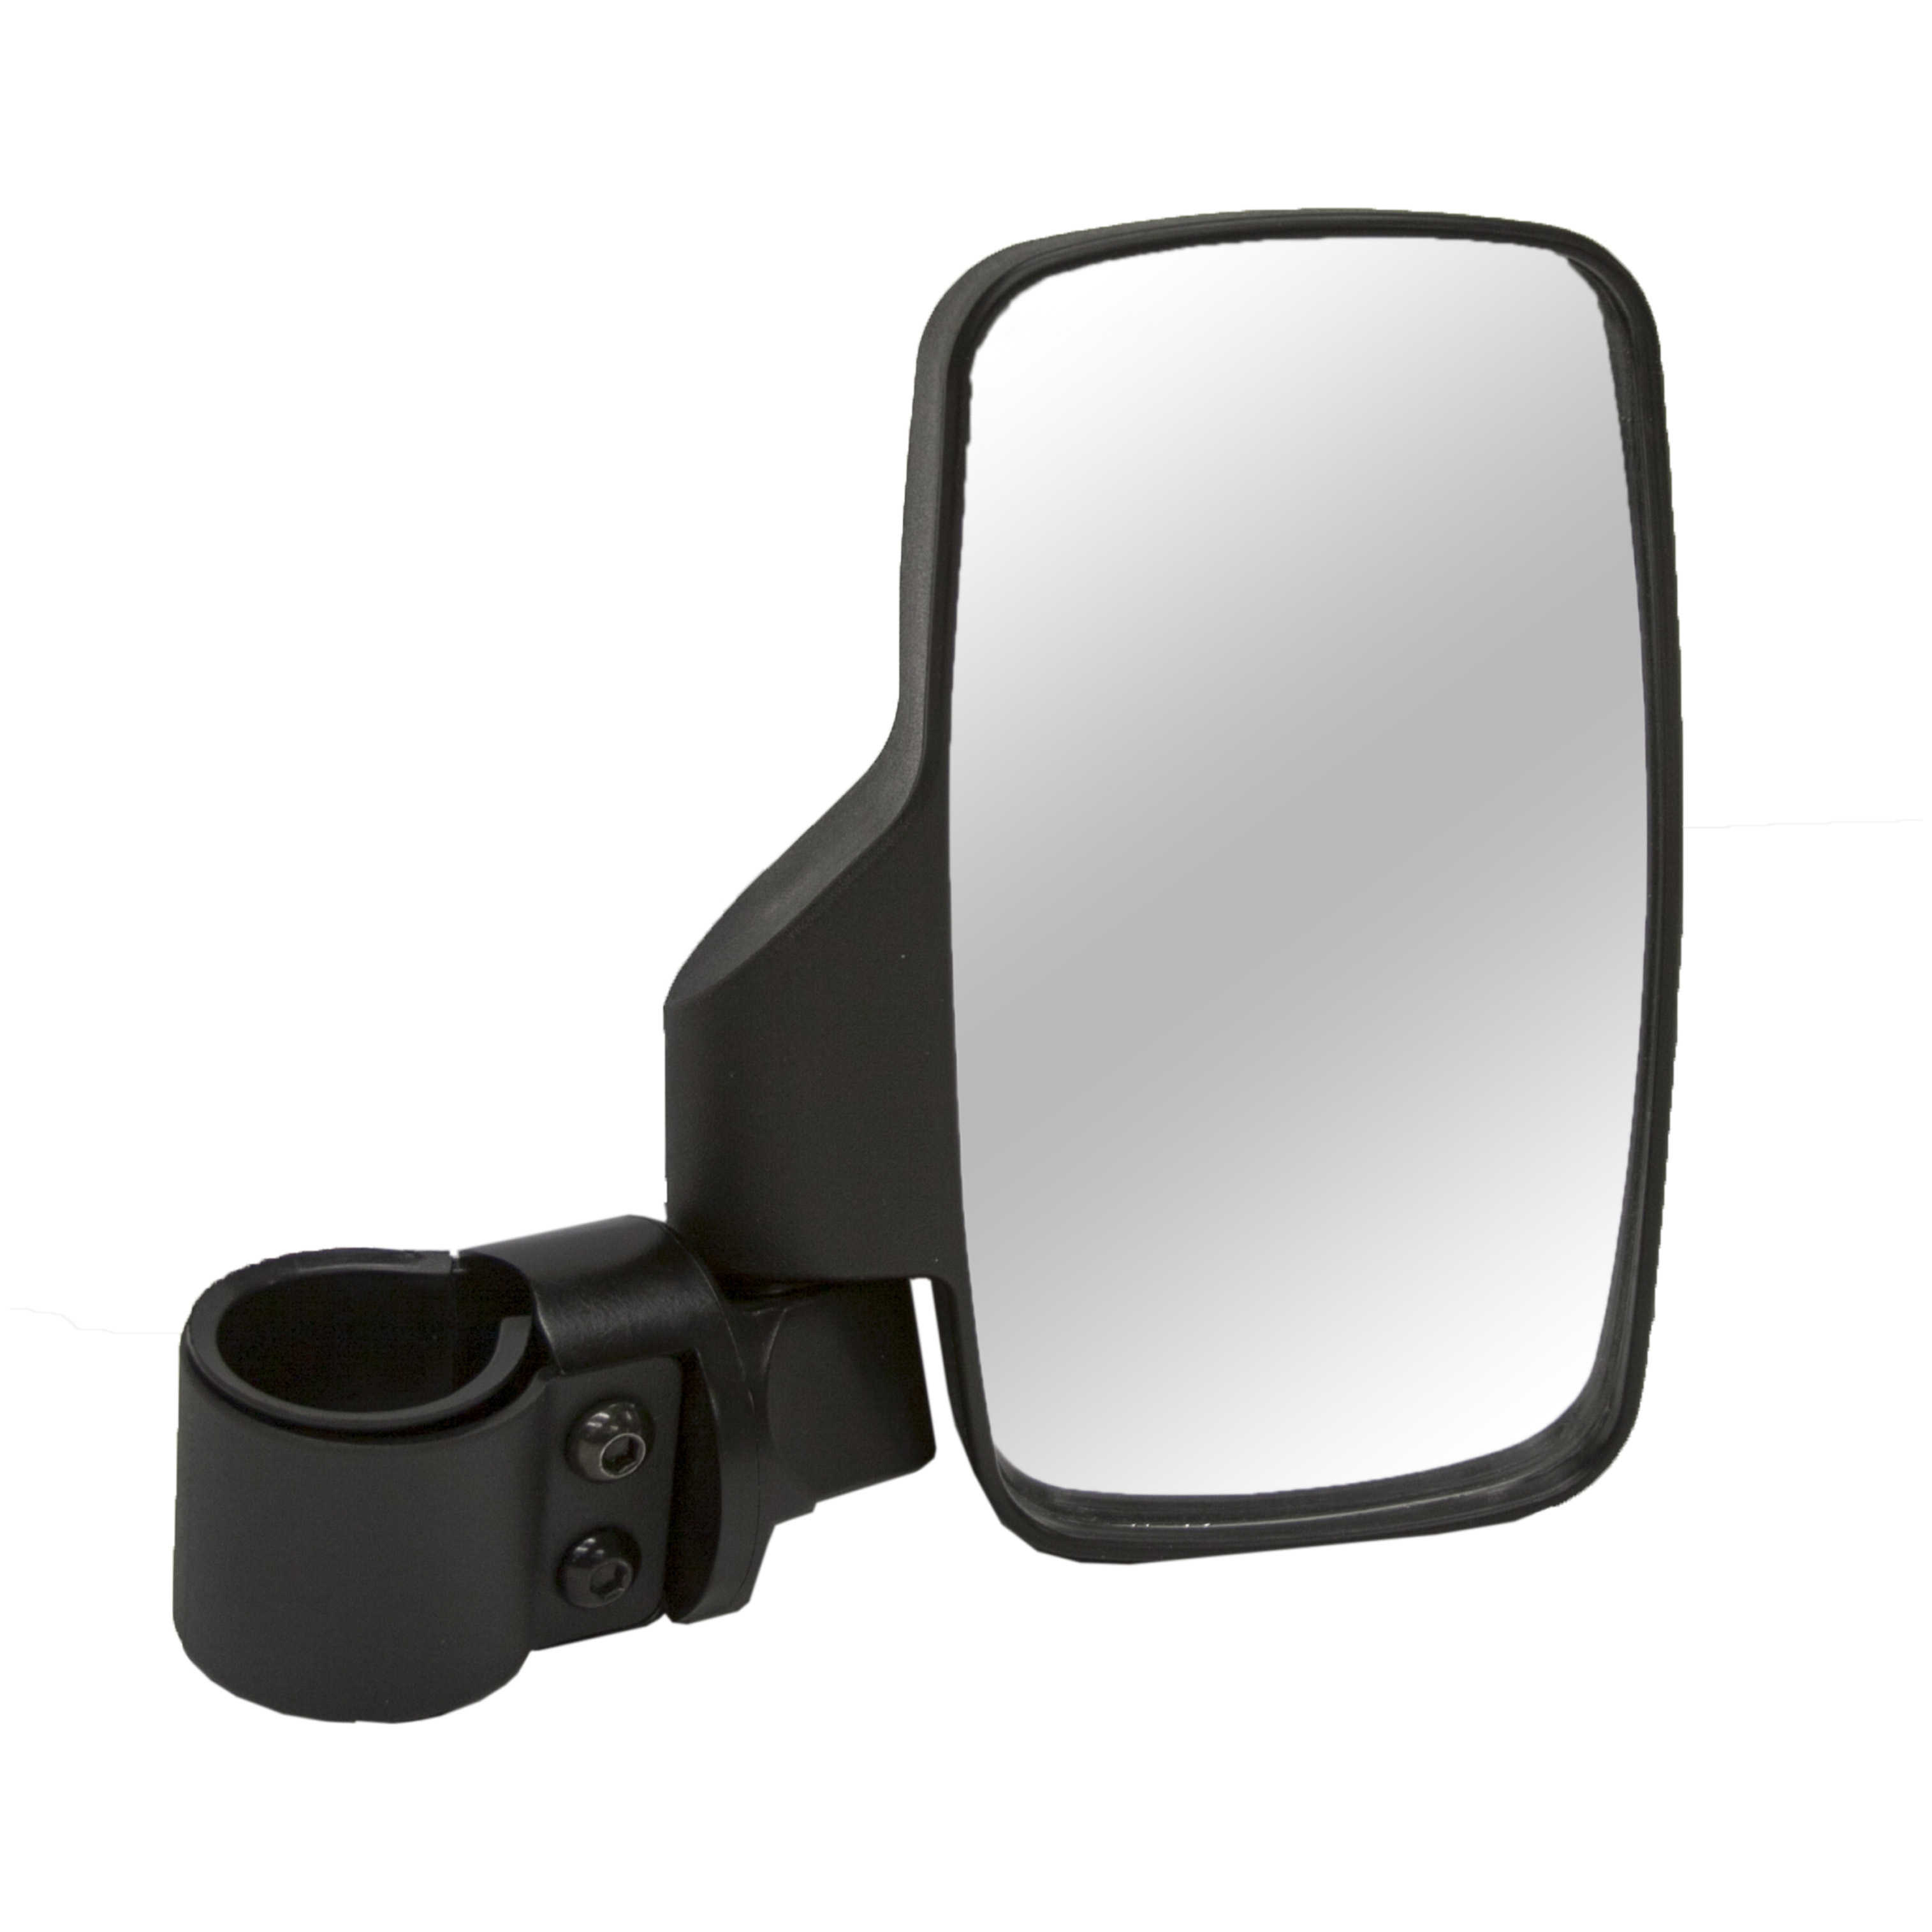 "2-Pk. of Kolpin UTV Side Mirrors make looking back safe and easy. Put eyes in the back of your helmet! With this 2-Pk. of Kolpin Side Mirrors you can look back at your trail buddies without losing control or running off the road. Plus, you'll meet the road travel requirements of many states. The convex mirrors provide high visibility, while the ball socket joints give you unlimited viewing angles. And they're incredibly easy to install with the included 1 3/4"" OD clamps that fits most major brand UTVs. Features:2 Convex mirrors provide wide viewing range and image stabilization Constructed of shatterproof tempered glass High-impact ABS housing for durability Ball socket joints for unlimited viewing angle Mirror dimensions: 4 1/8"" x 7 3/4""h. Side mirrors will fit:Polaris Ranger (Not 900XP) Polaris RZR Yamaha Rhino Kawasaki Mule 600's Arctic Cat Prowler (round tube) All John Deere Gators Most other major brand UTVs - $44.99"